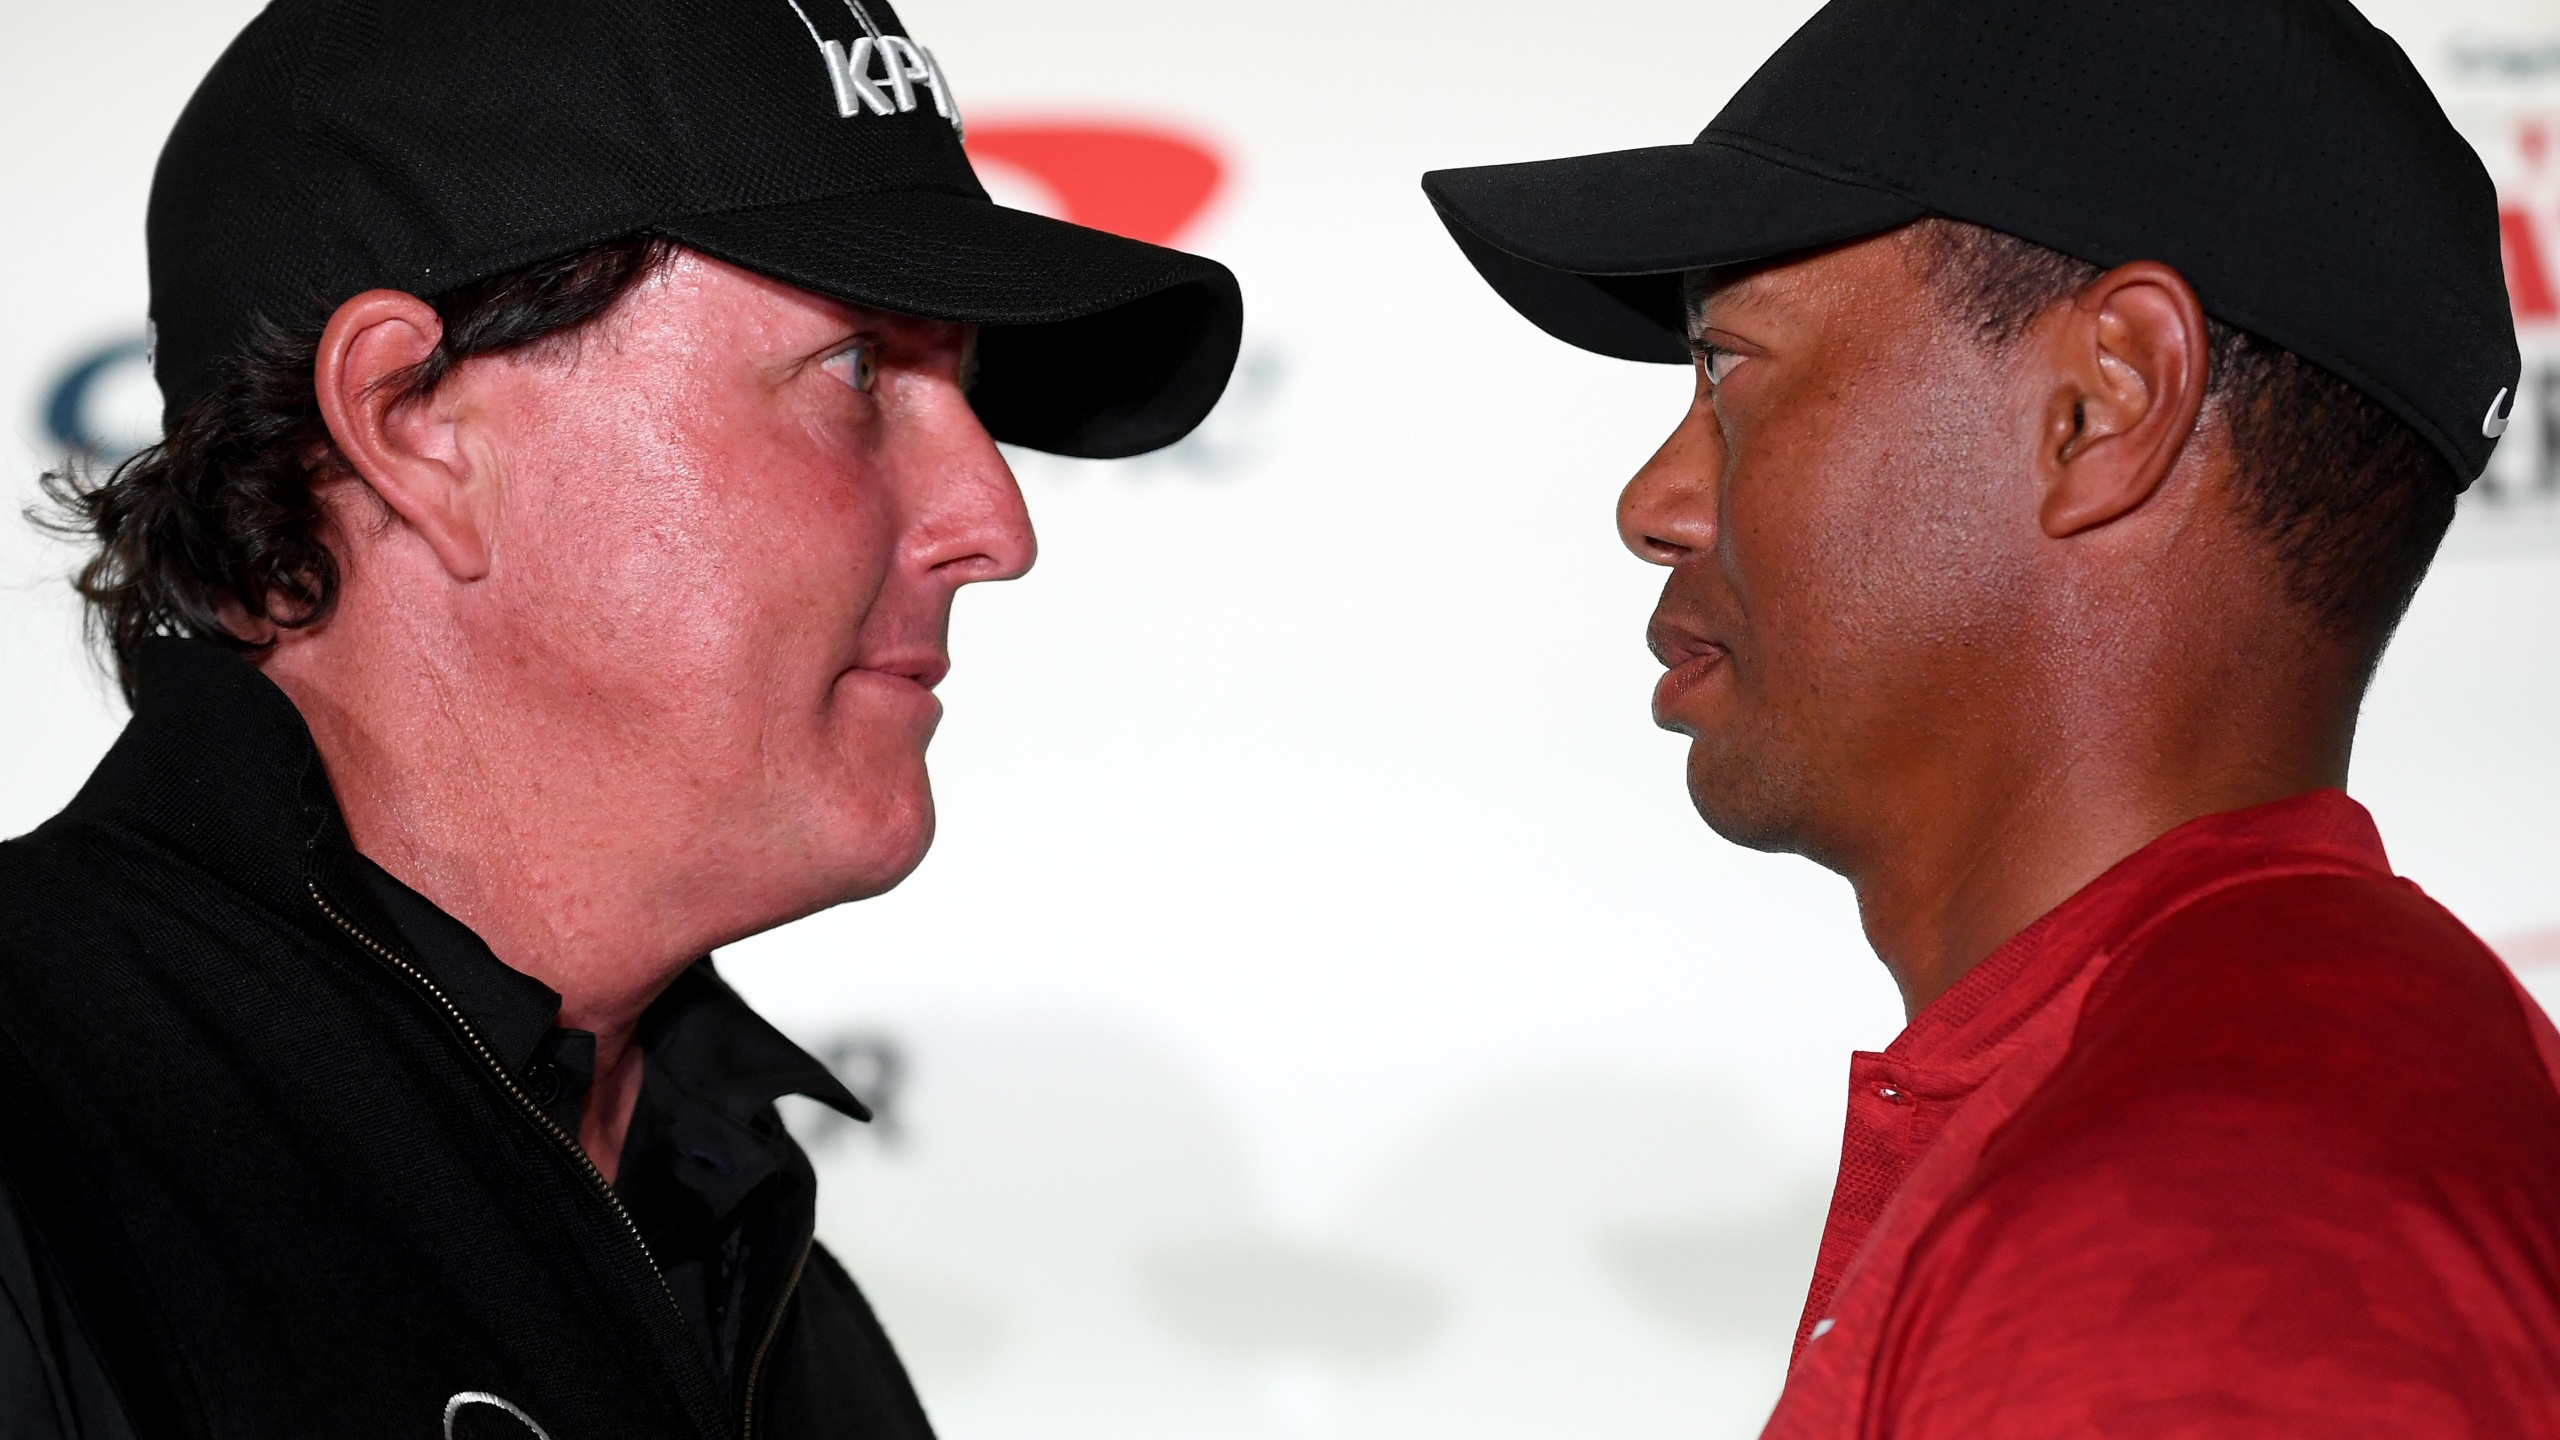 Tiger Woods and Phil Mickelson are set to be joined by NFL legends Tom Brady and Peyton Manning in a possible televised charity match. (Harry How/Getty Images for The Match)